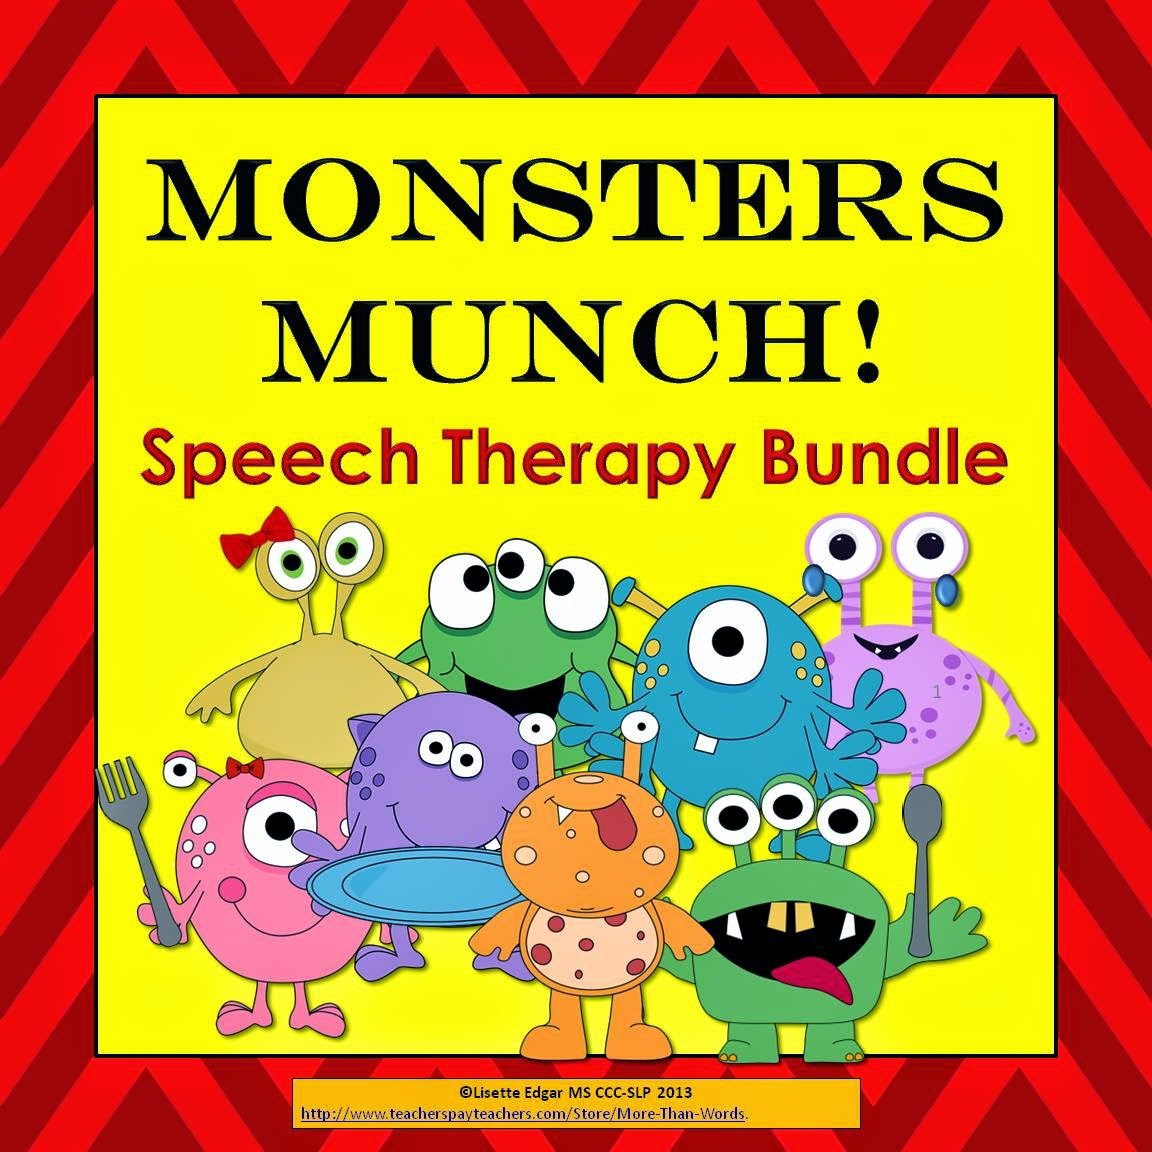 http://www.teacherspayteachers.com/Product/Monsters-Munch-Speech-Therapy-Bundle-905910